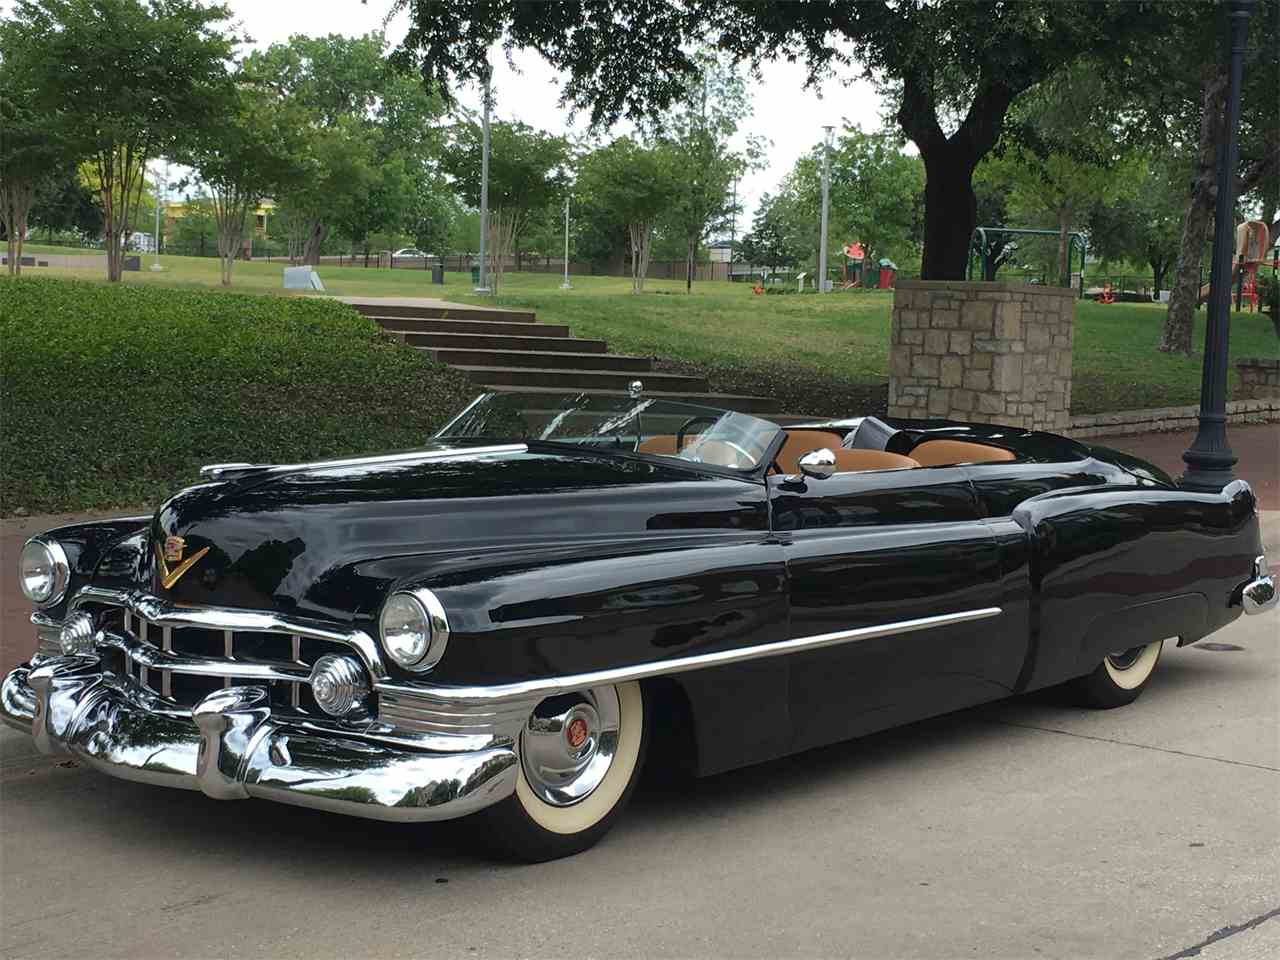 1950 Cadillac Series 62 for Sale | ClassicCars.com | CC-9822091950s Cars For Sale Cheap